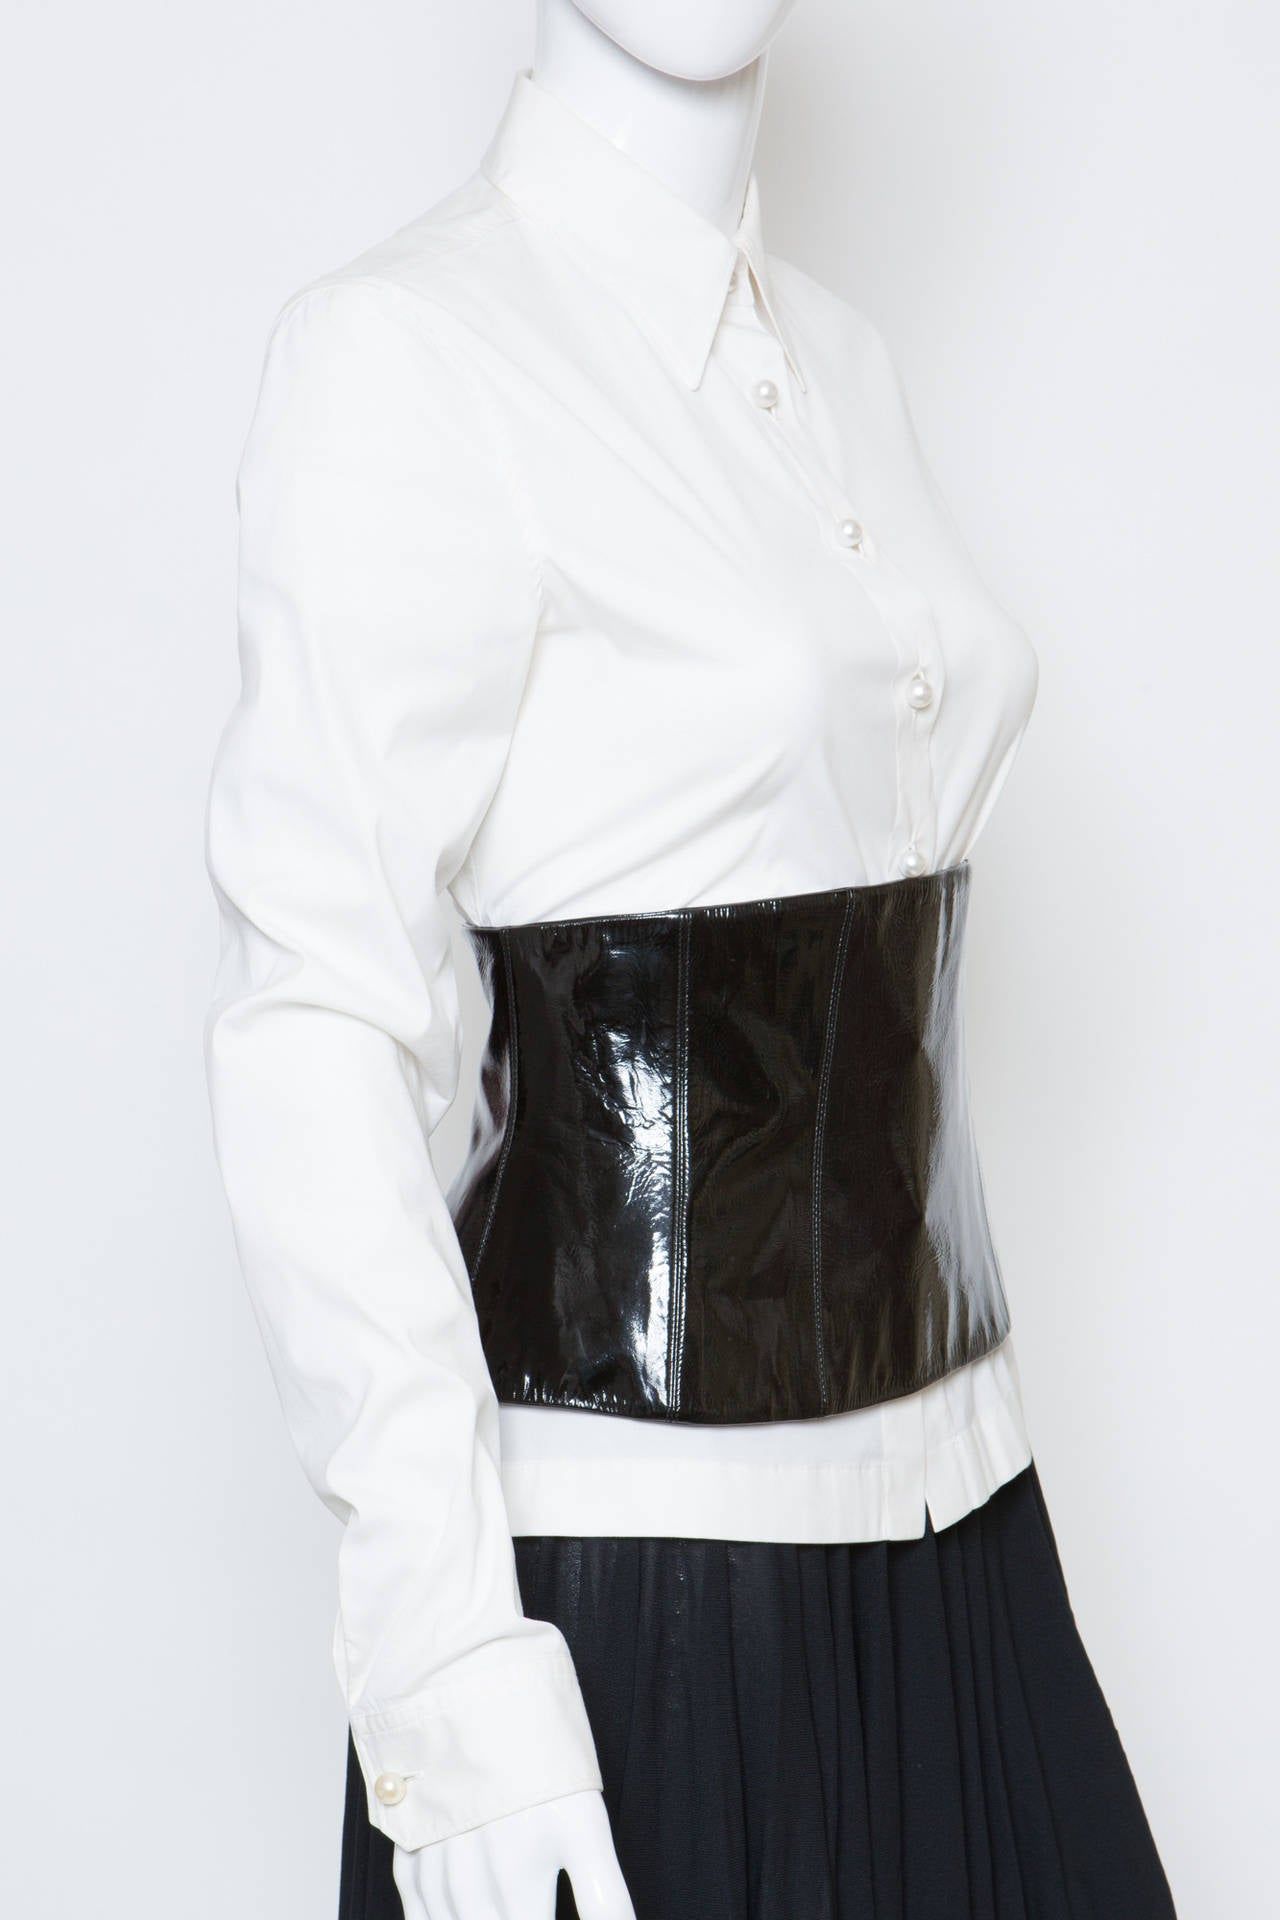 Chanel White Shirt With Black Vinyl Leather Corset Belt At